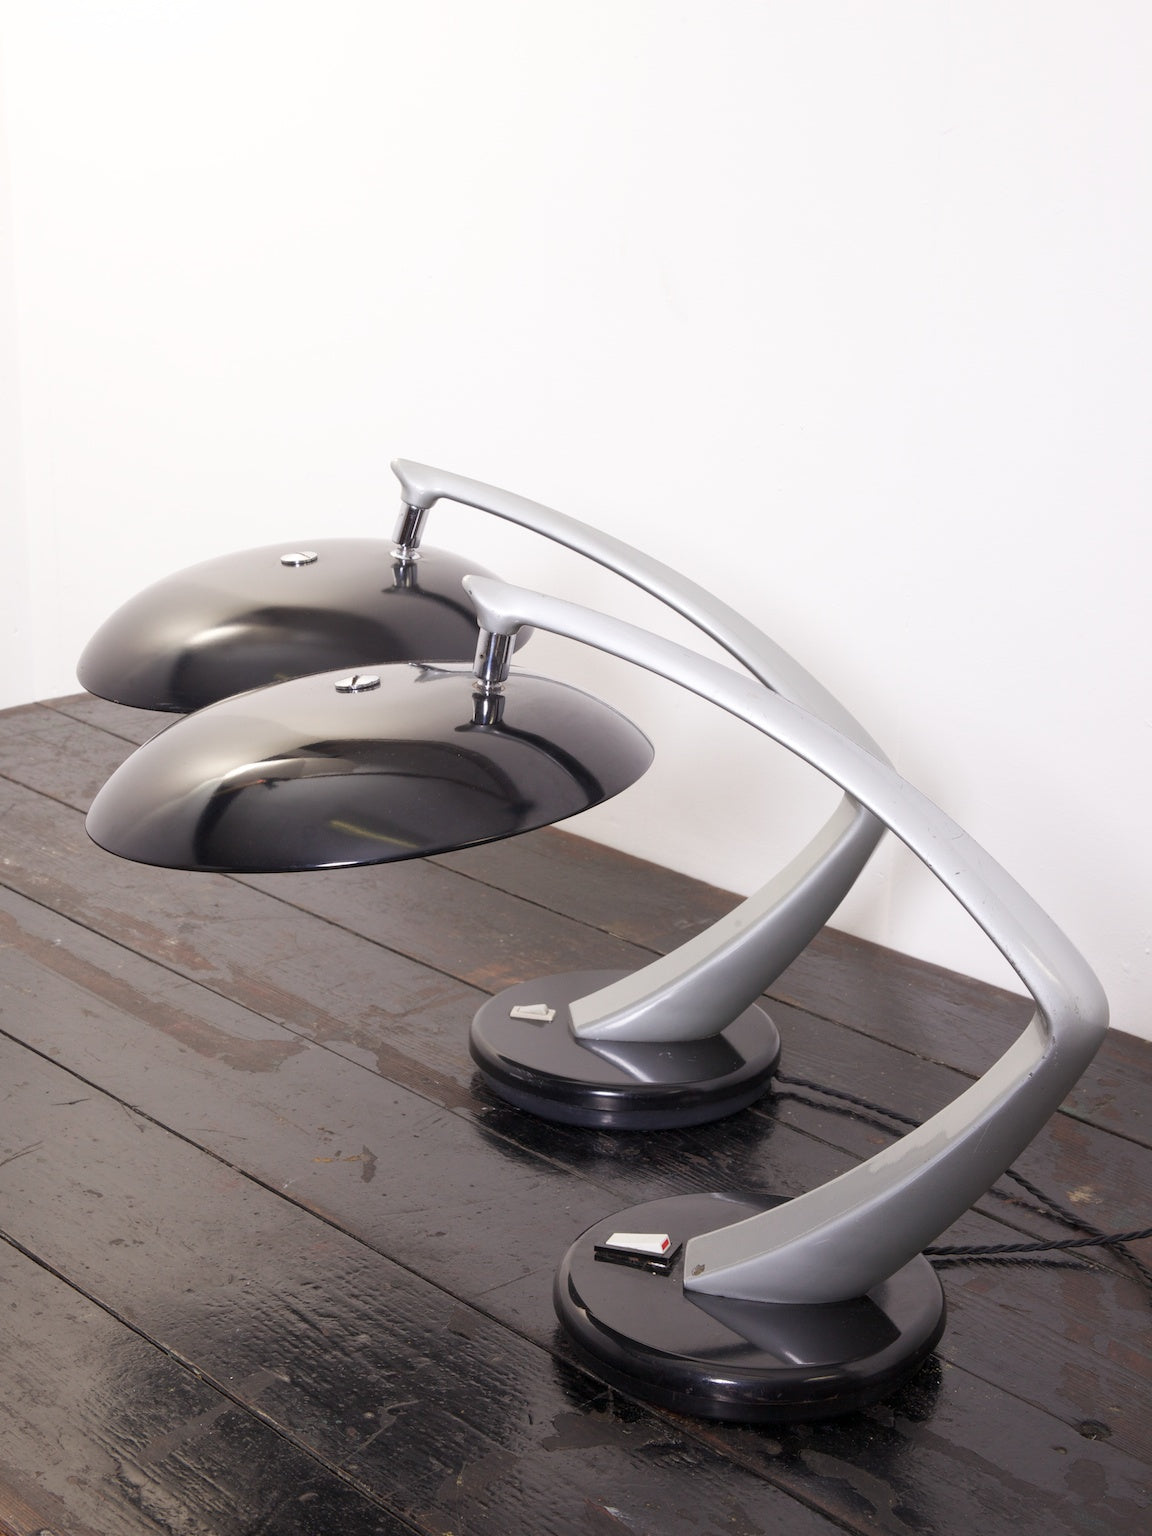 Fase Boomerang Desk Lights